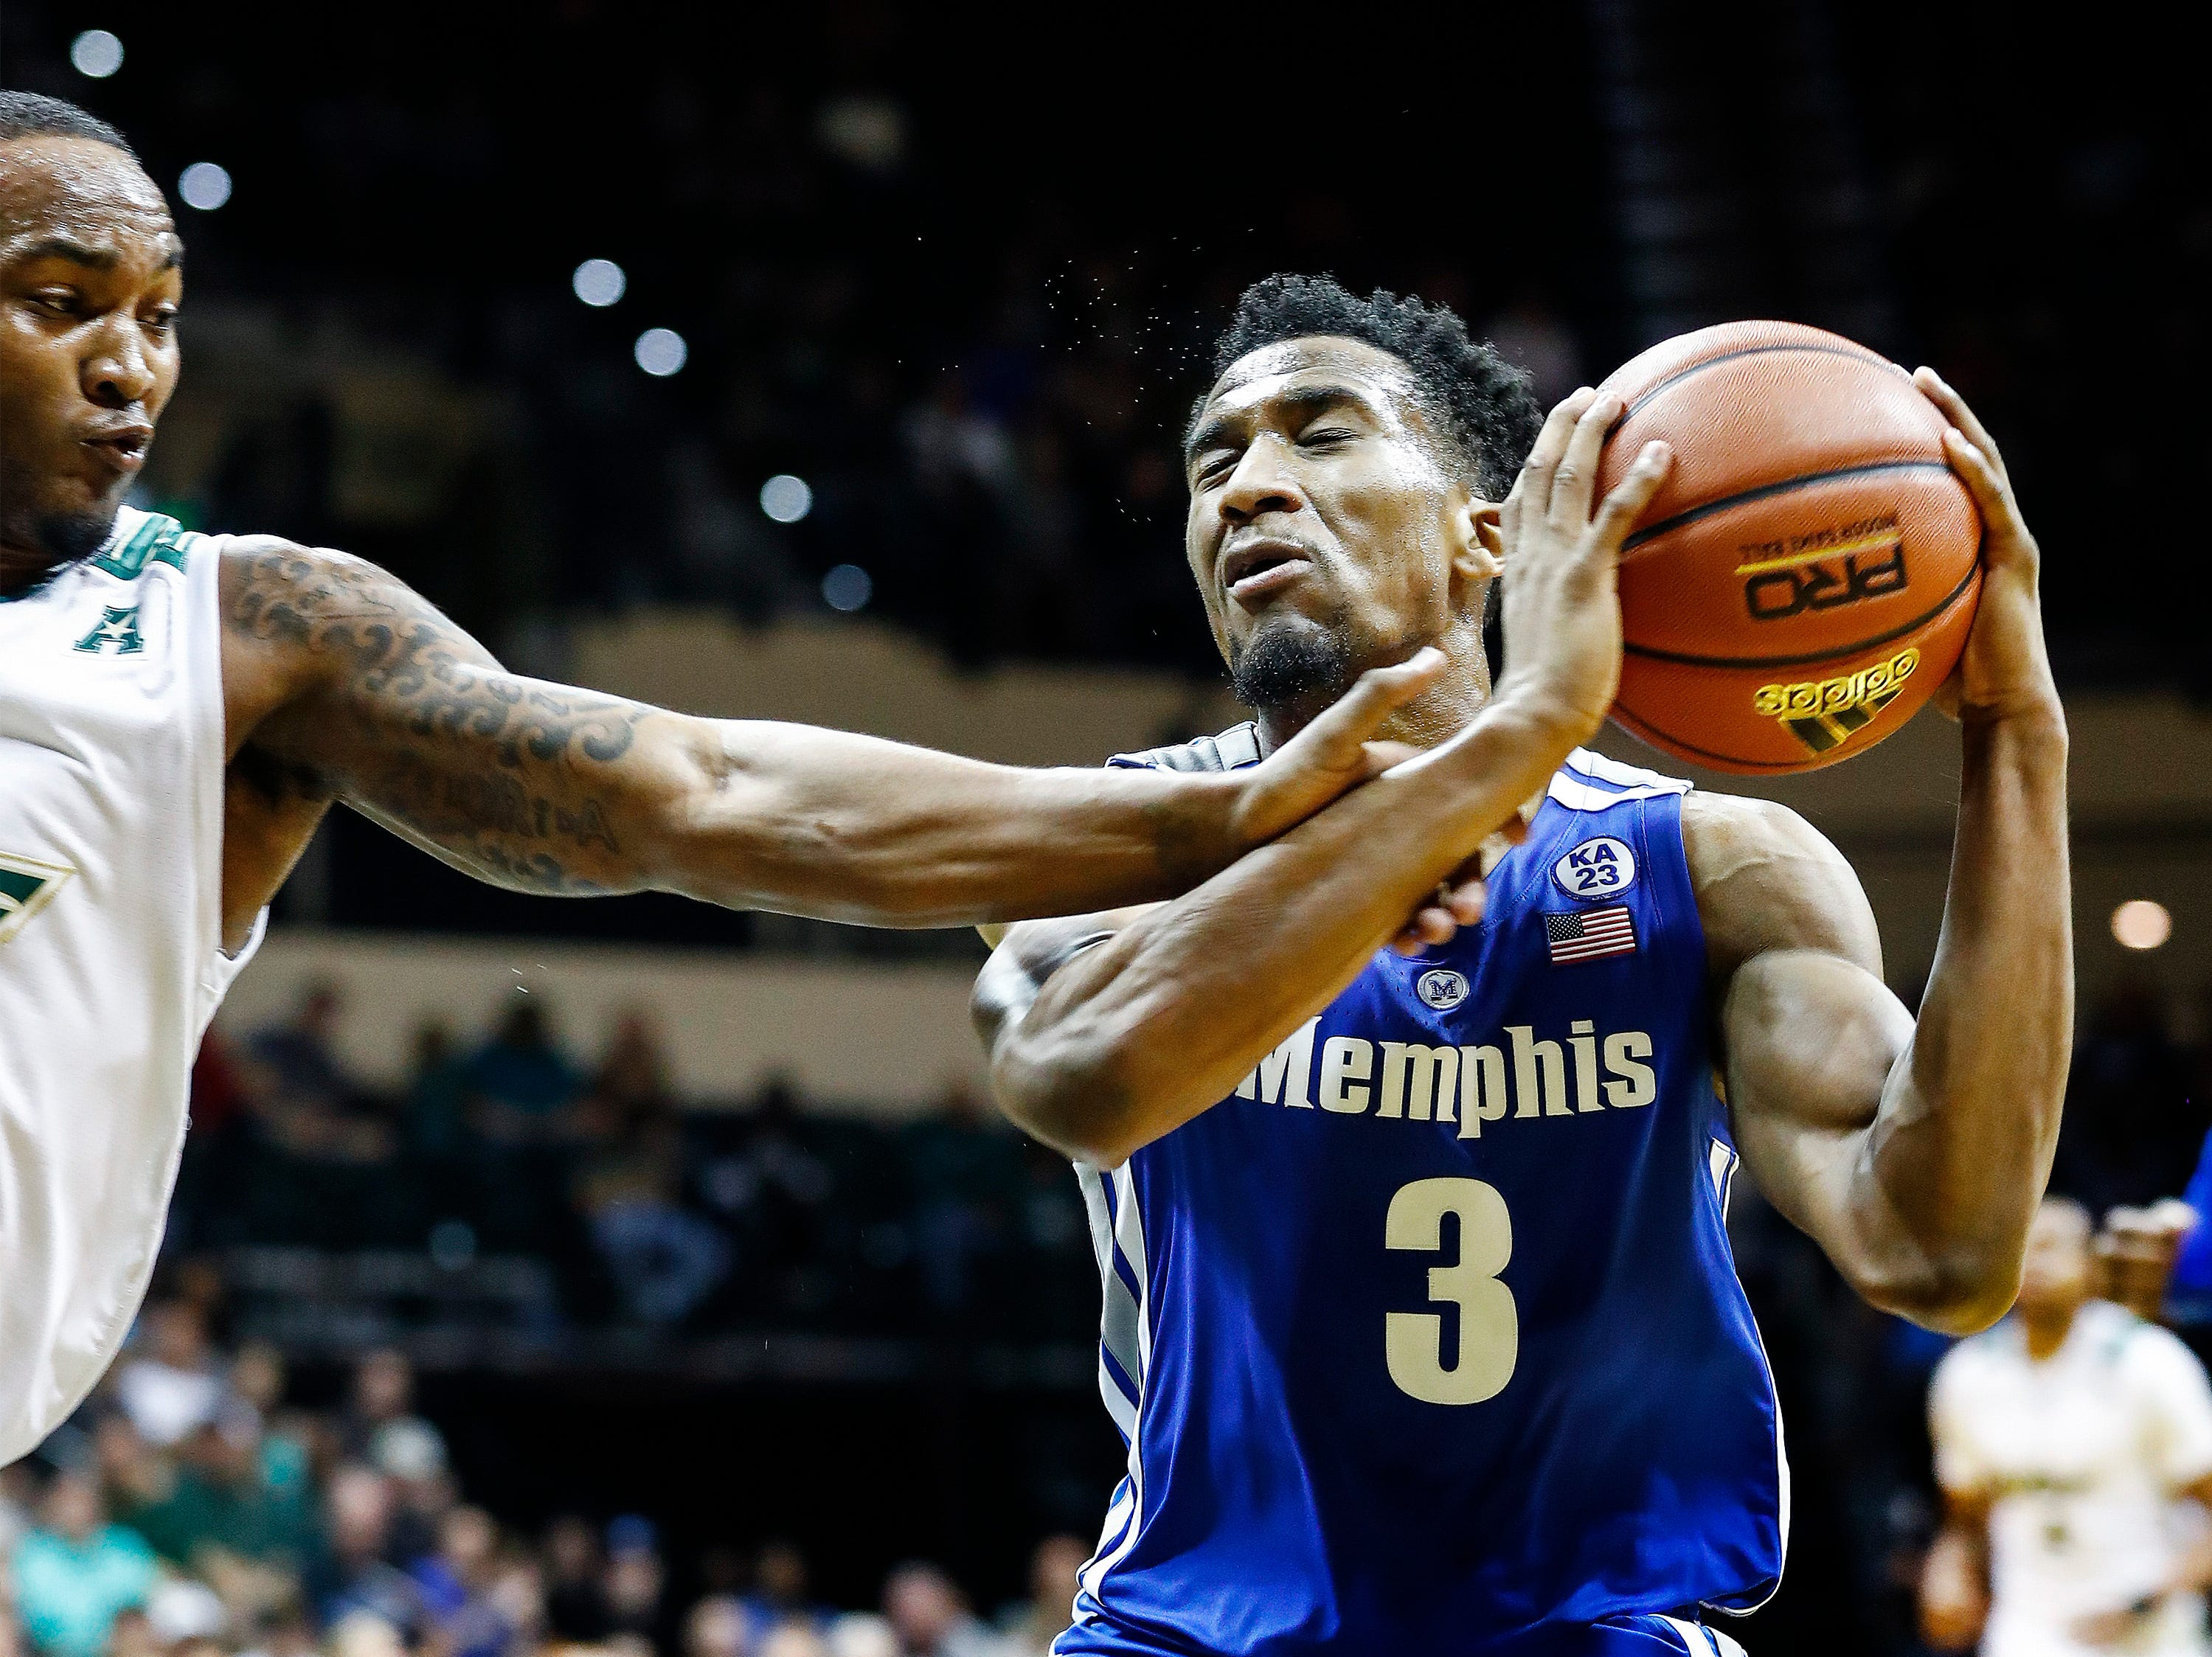 Memphis guard Jeremiah Martin (right) is fouled while driving the lane against USF defender Laquincy Rideau (left) during action in Tampa, Saturday, February 2, 2019.